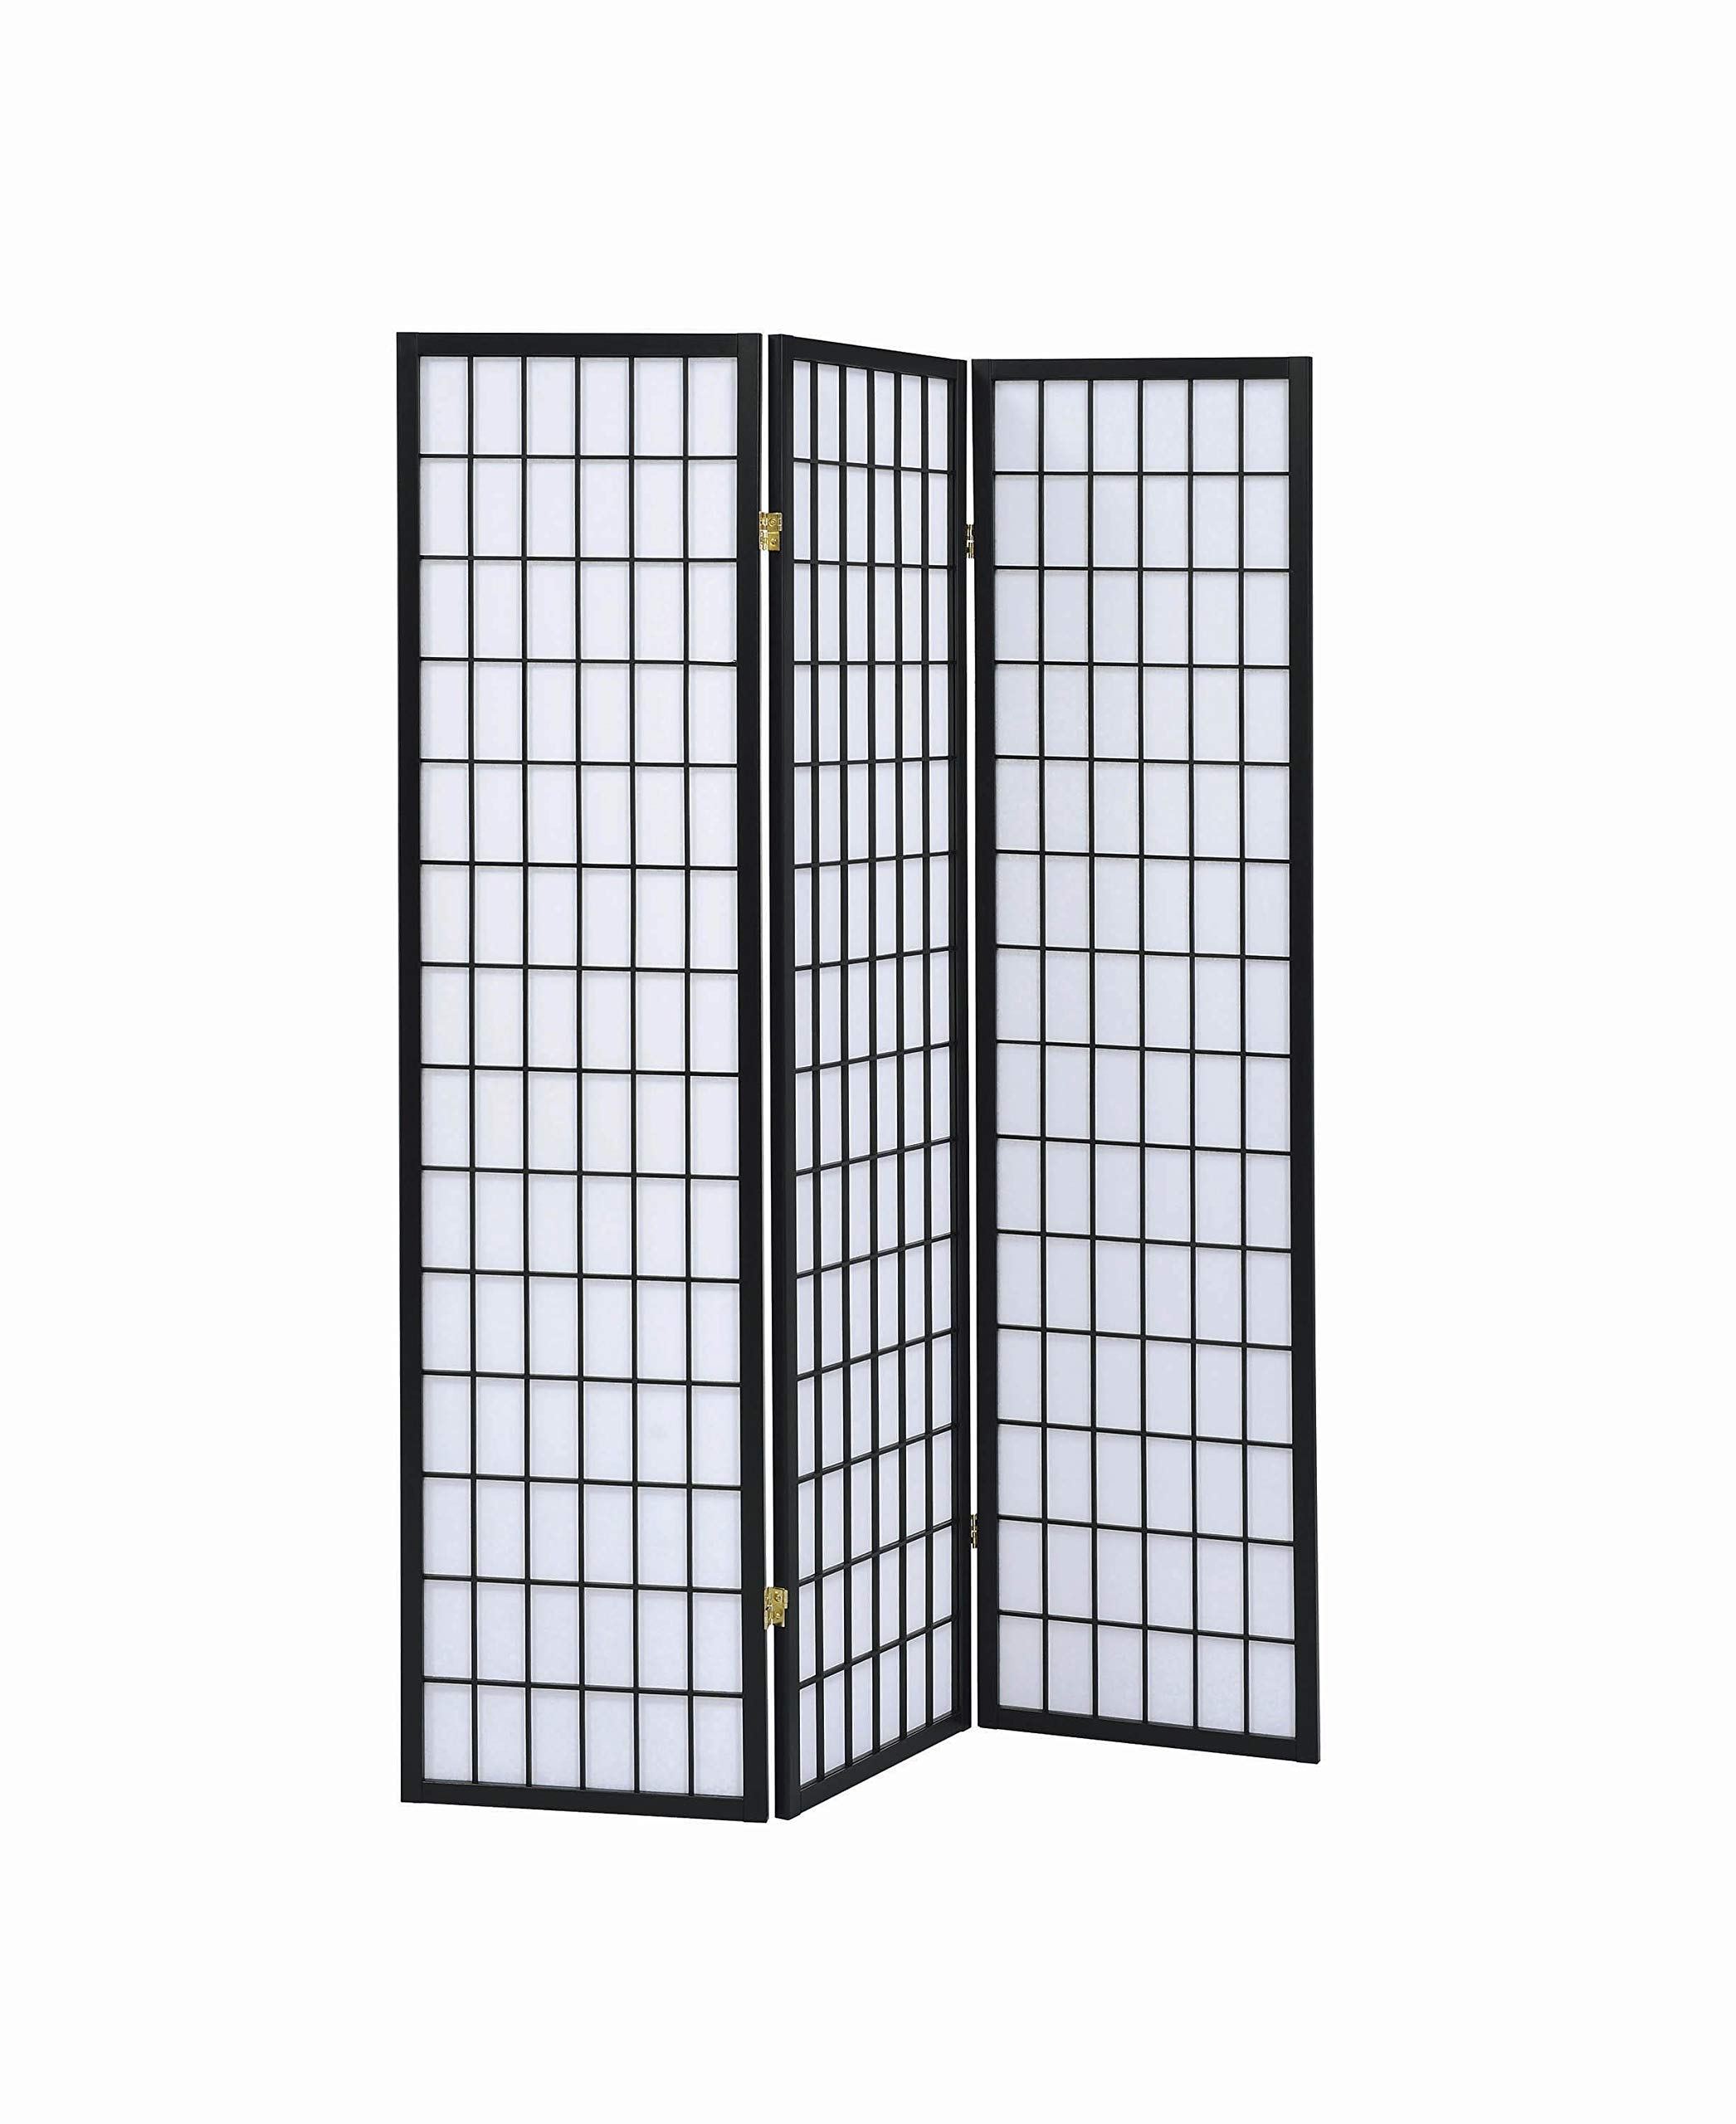 3-Panel Folding Screen Black and White by Coaster Home Furnishings